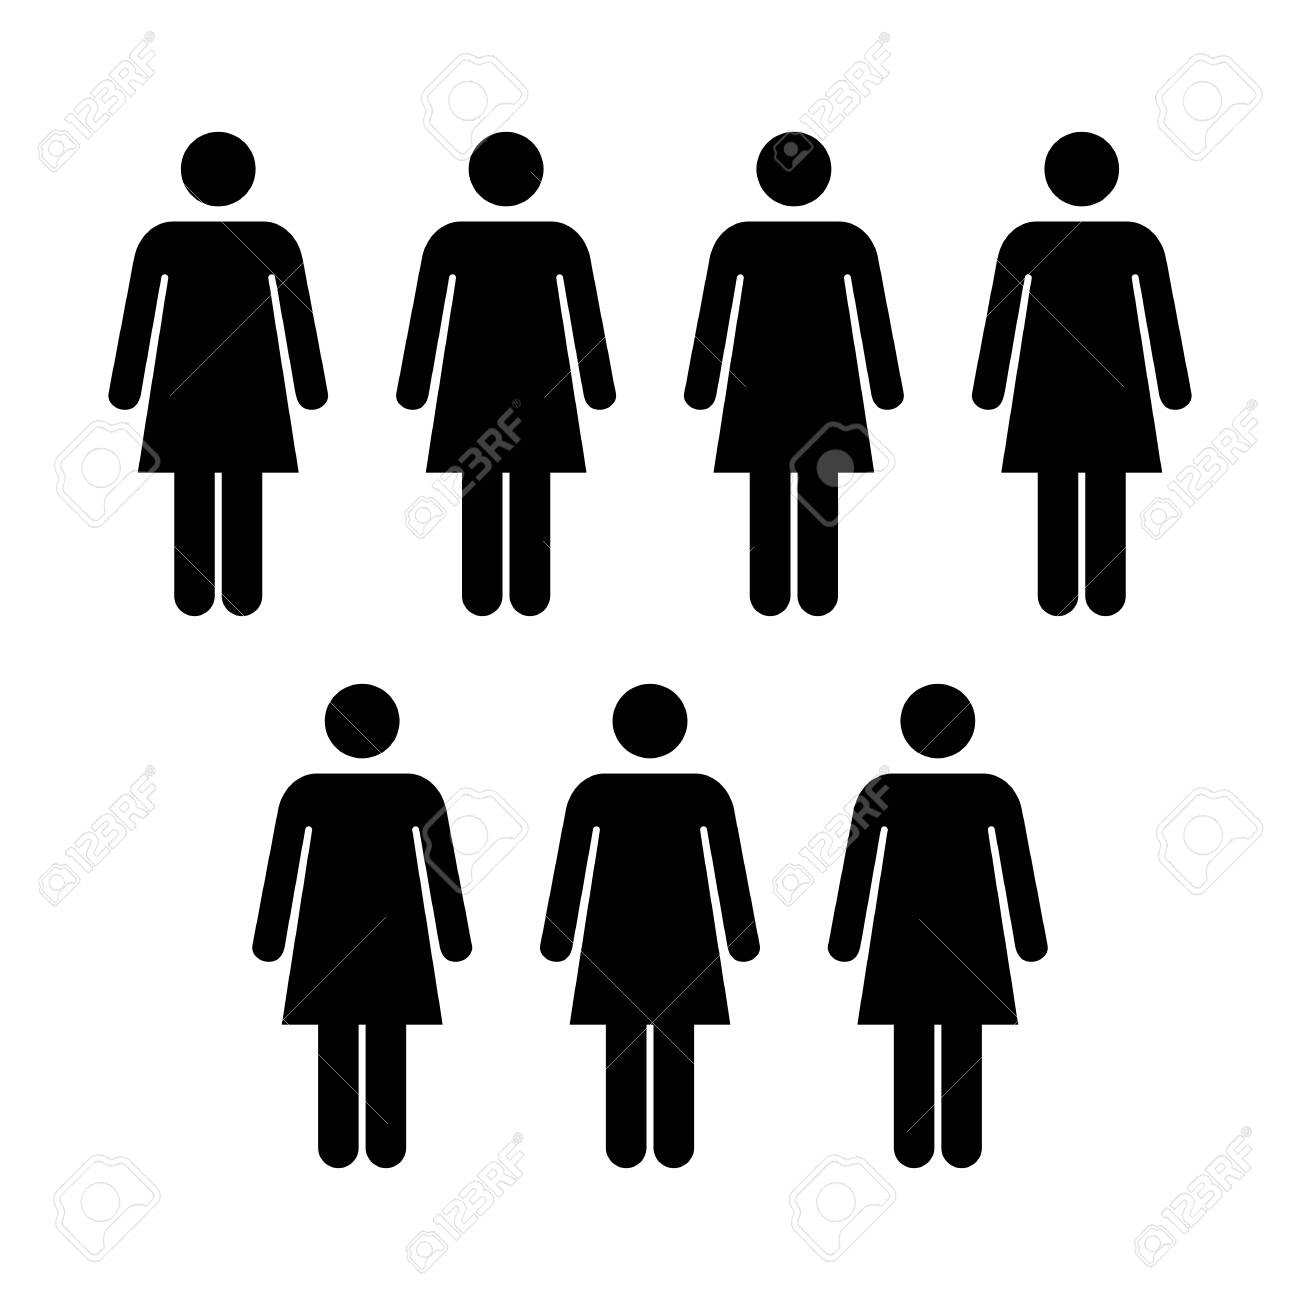 People Icon Vector Group Of Women Team Symbol For Business